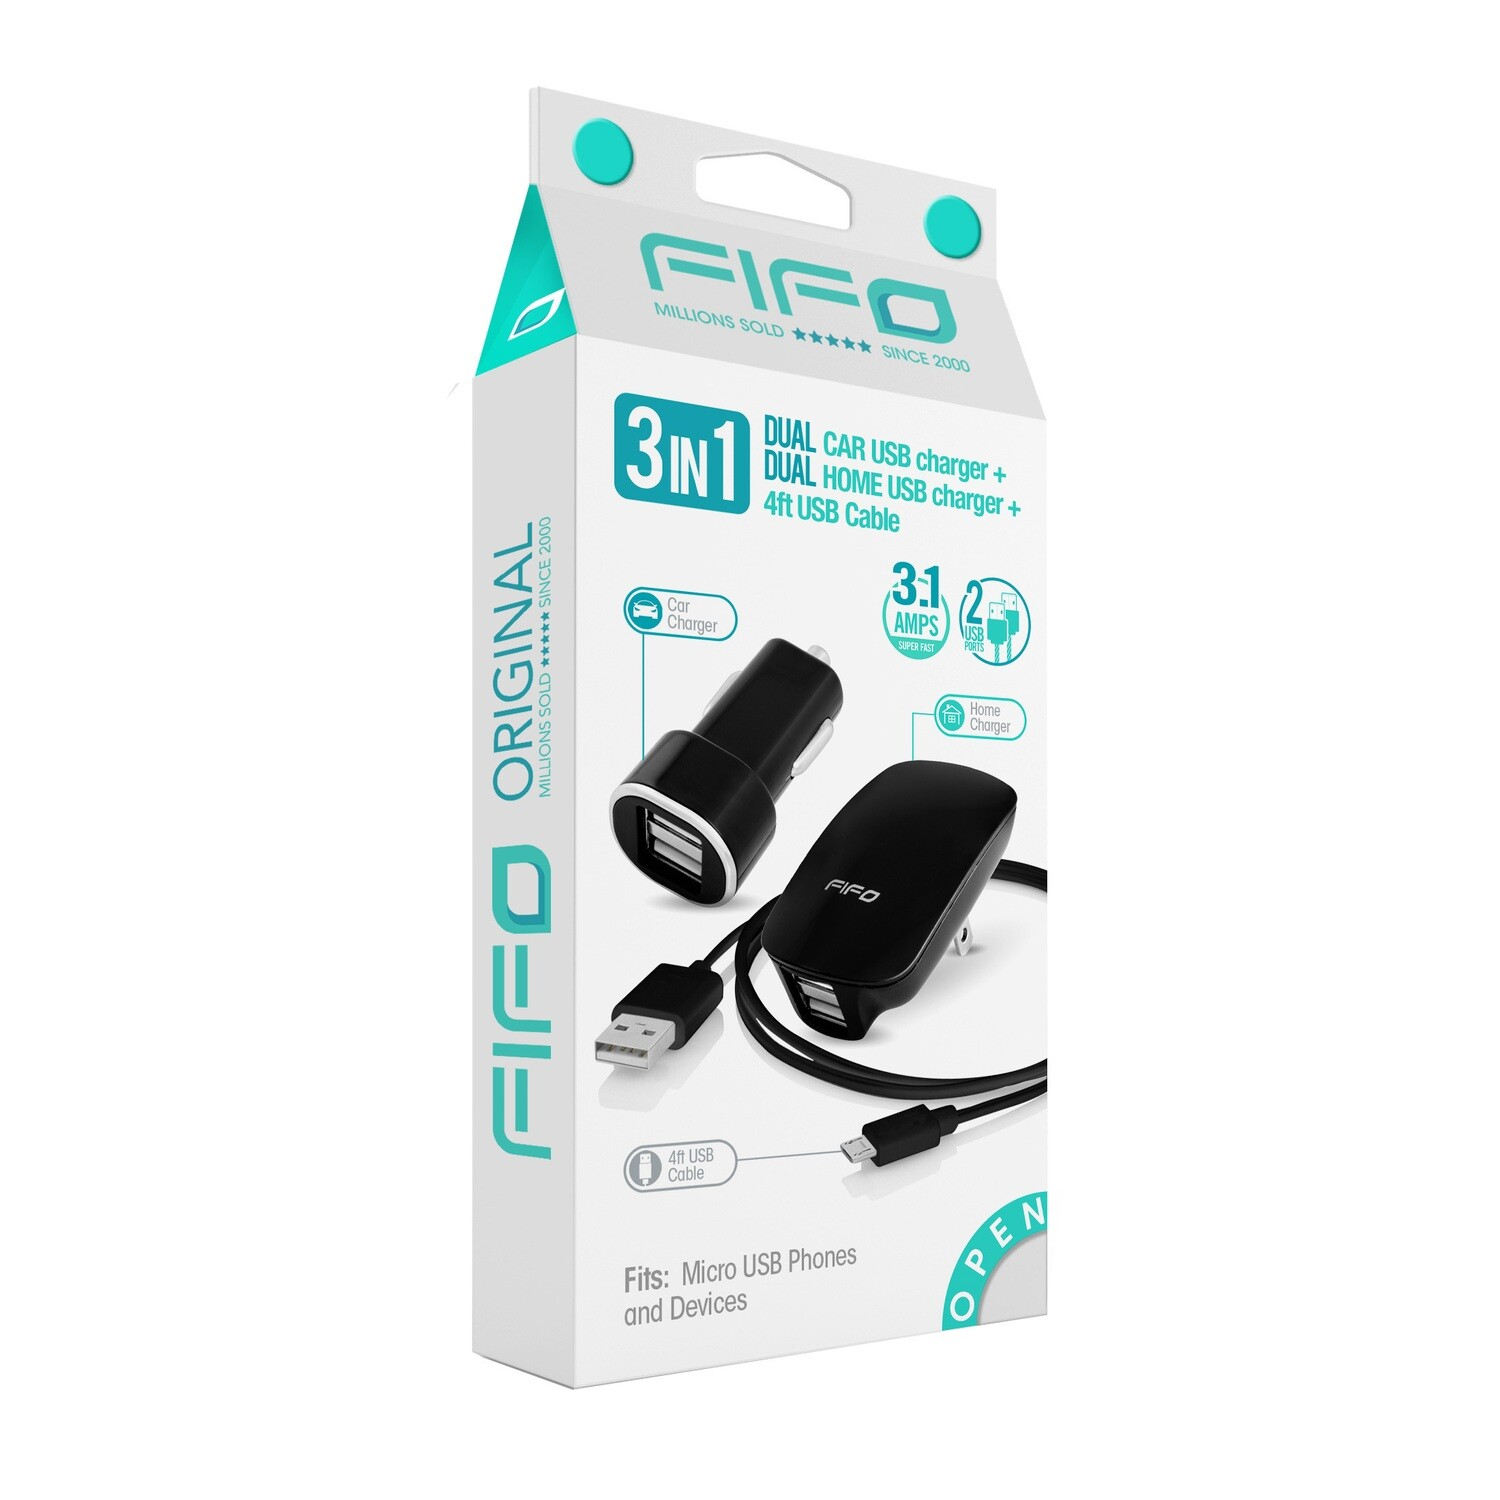 FIFO 3 in 1 DUAL USB HOME + CAR CHARGER + MICRO USB CABLE